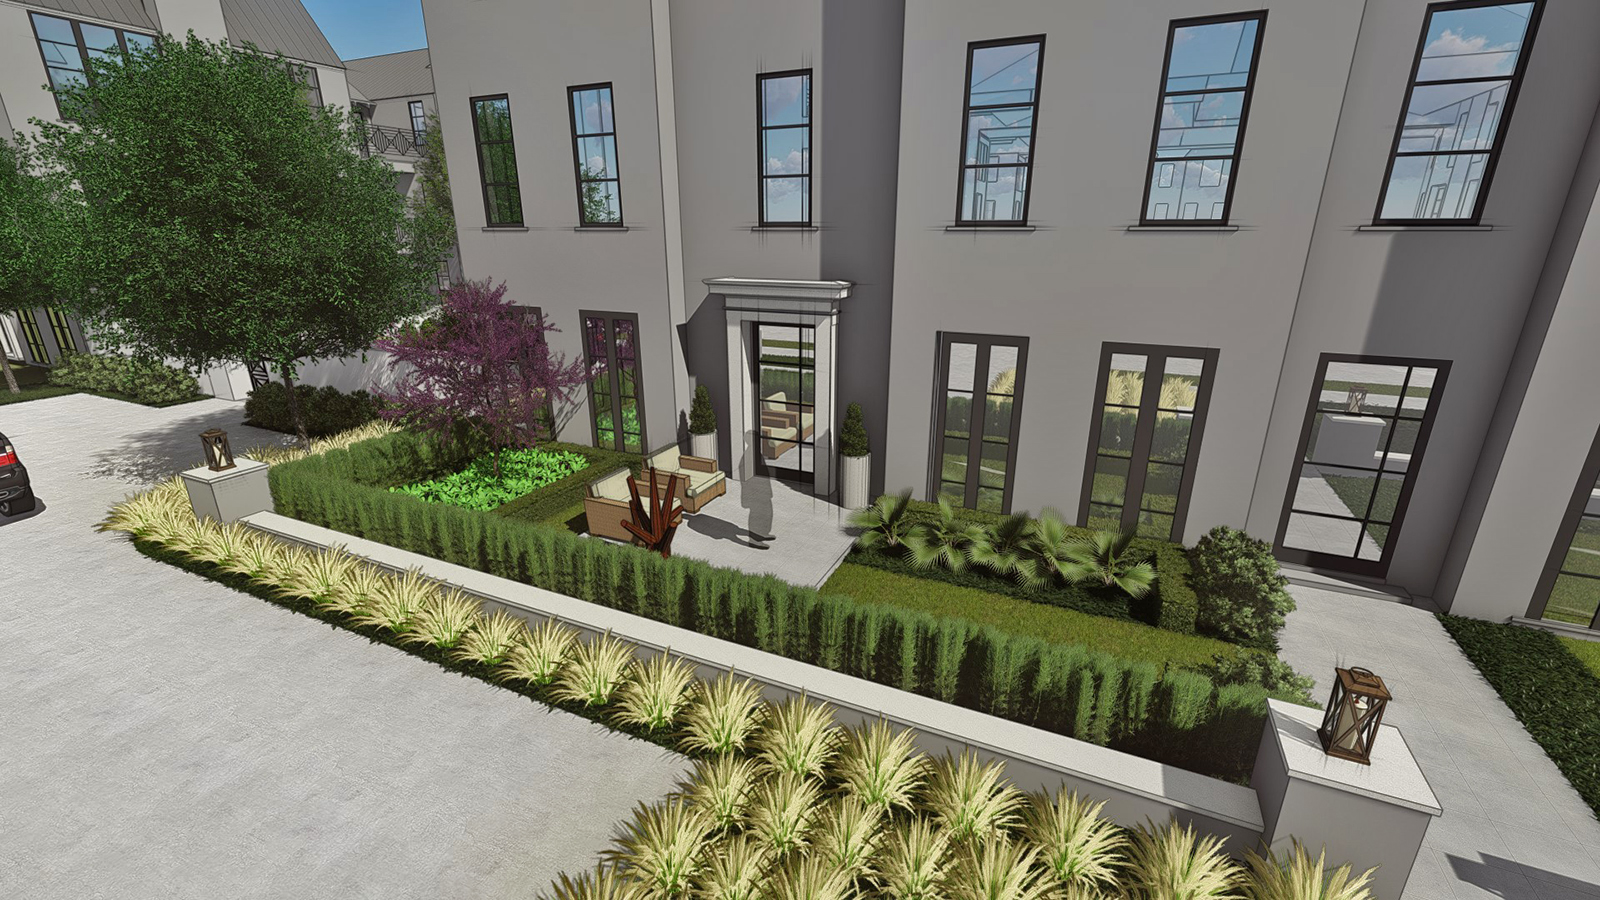 FRONT COURTYARD VIEW